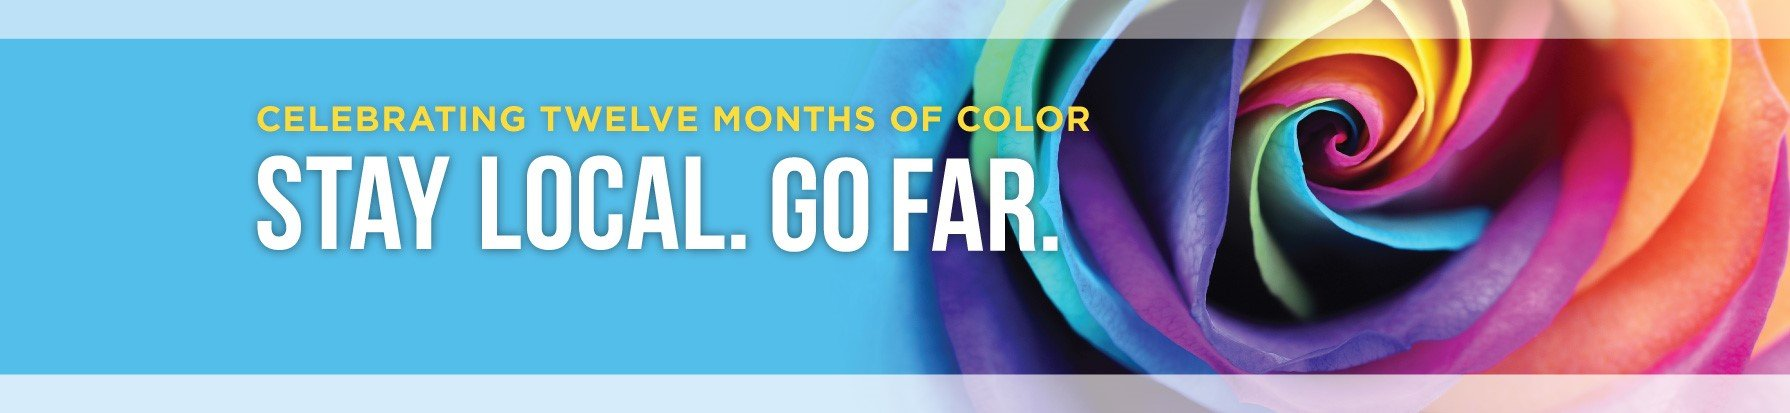 Celebrating Twelve Months of Color. 2018 Photo Calendar Contest. Click to Learn More